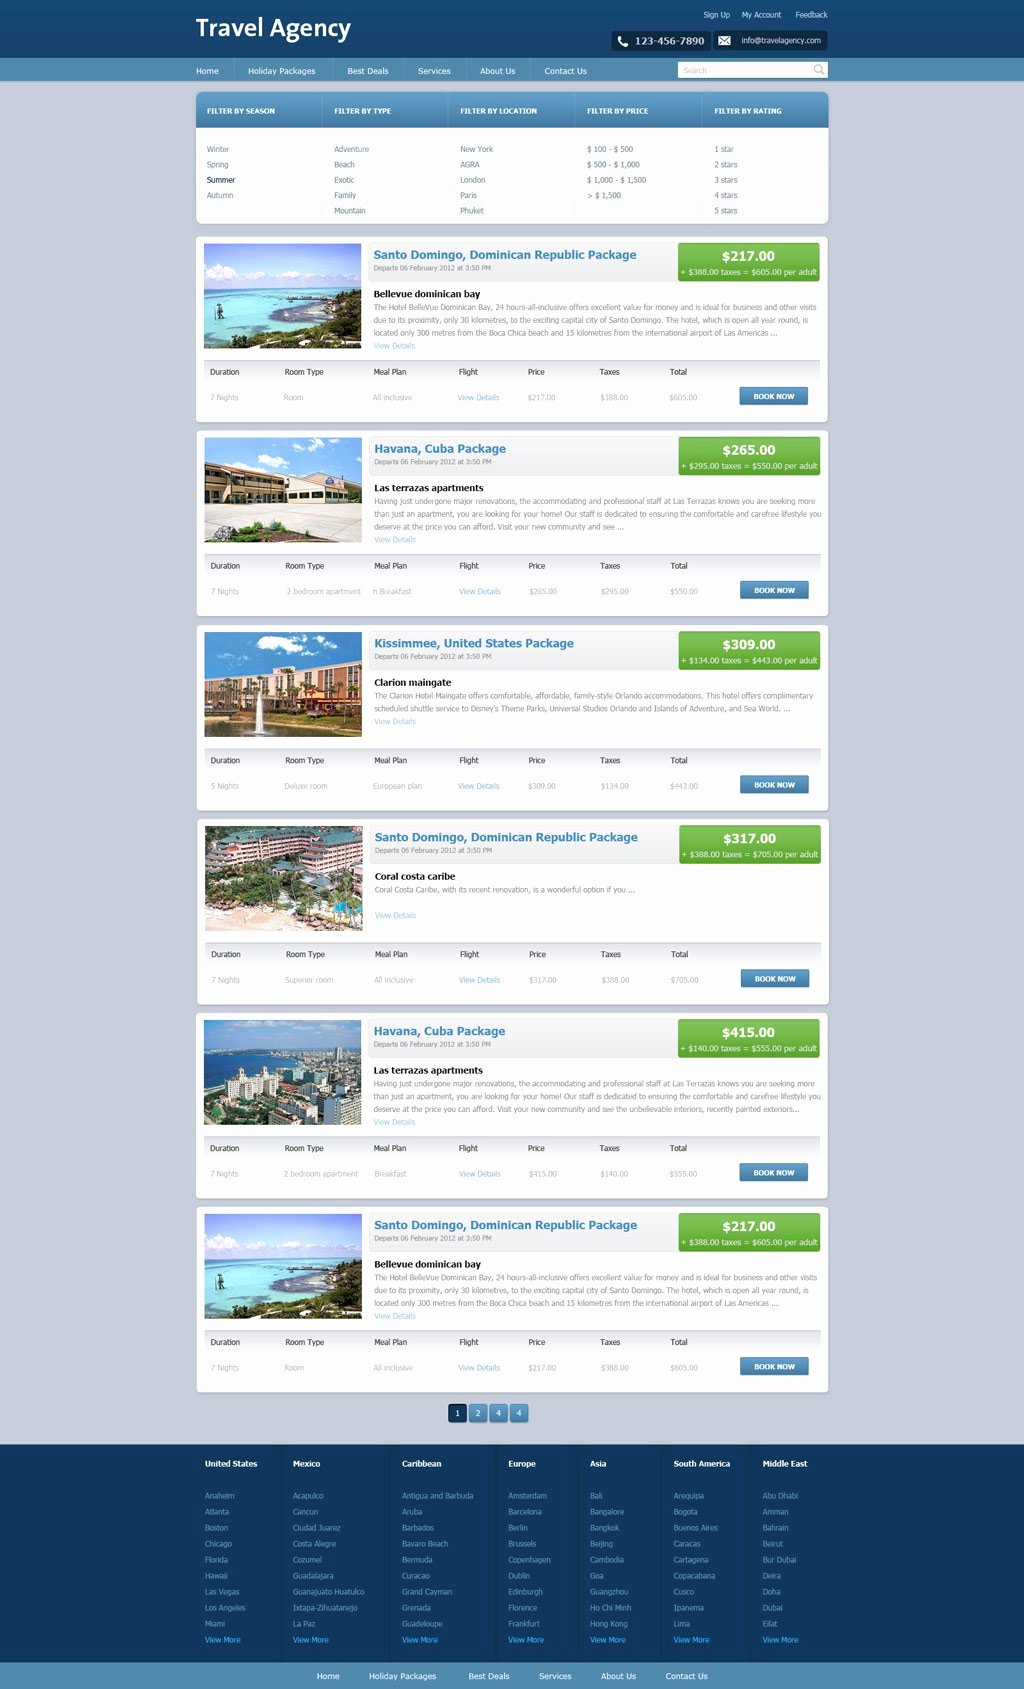 Travel Agent Website Template New Free Travel Agency Website Template